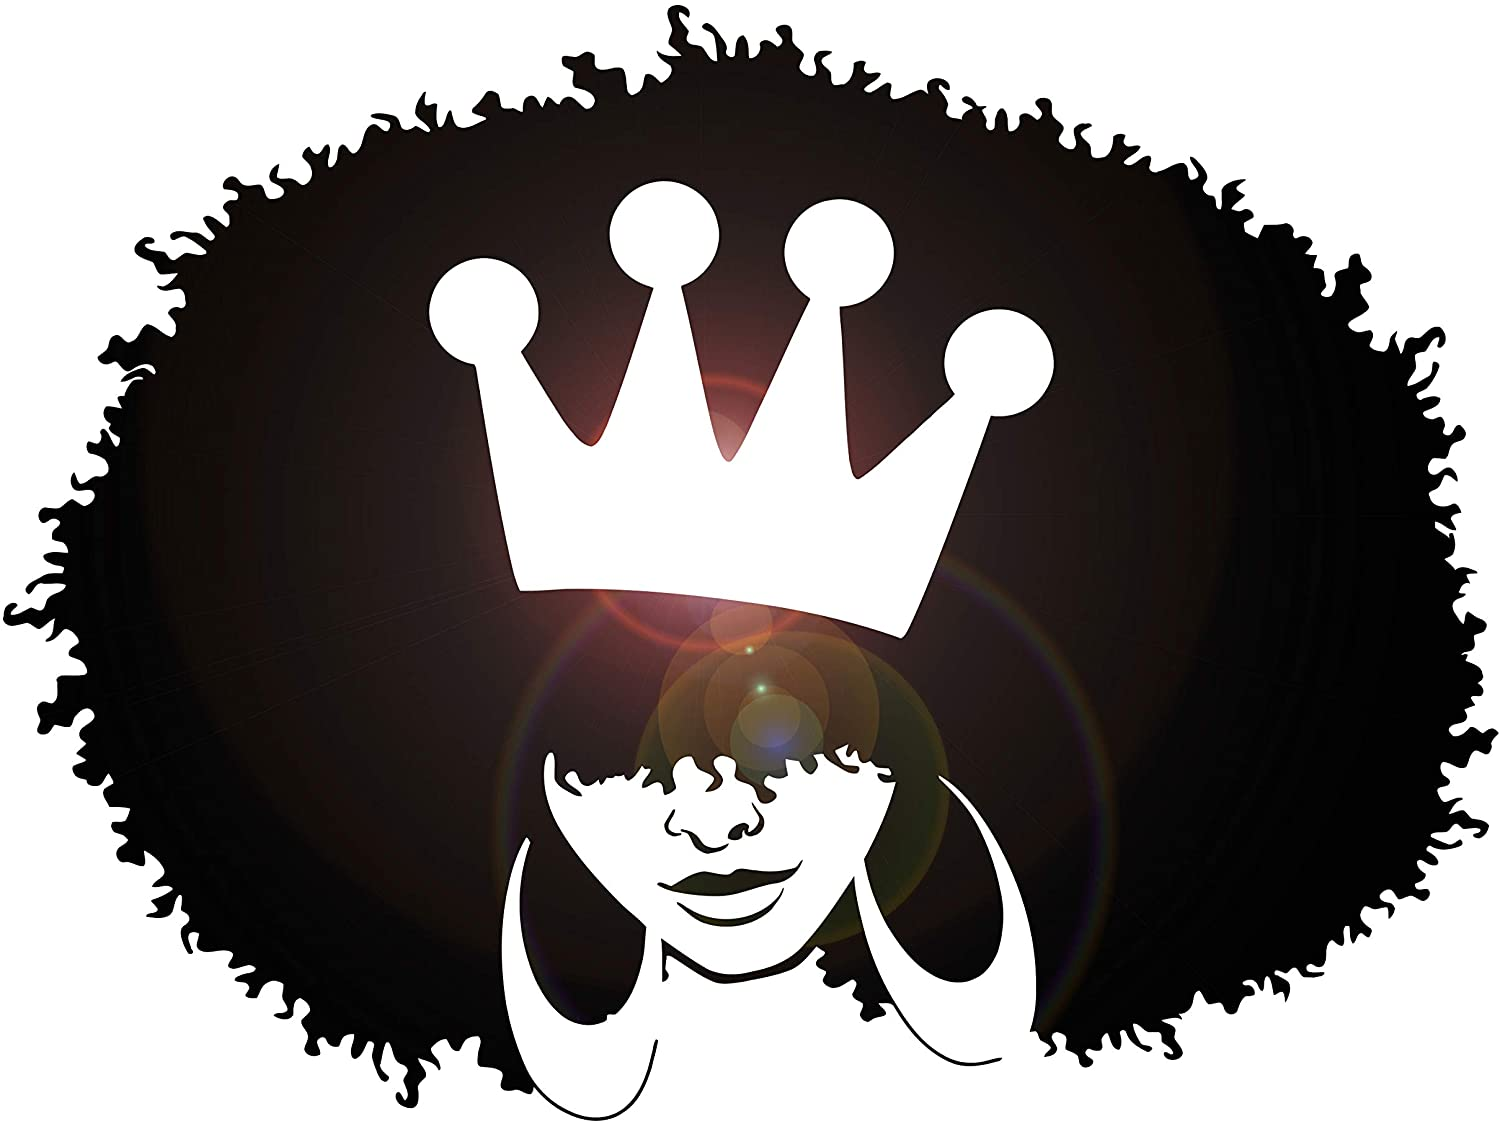 Amazon Com Vinyl Wall Decal African Hairstyle Girl Queen Crown Stickers Large Decor 3362ig Black Arts Crafts Sewing